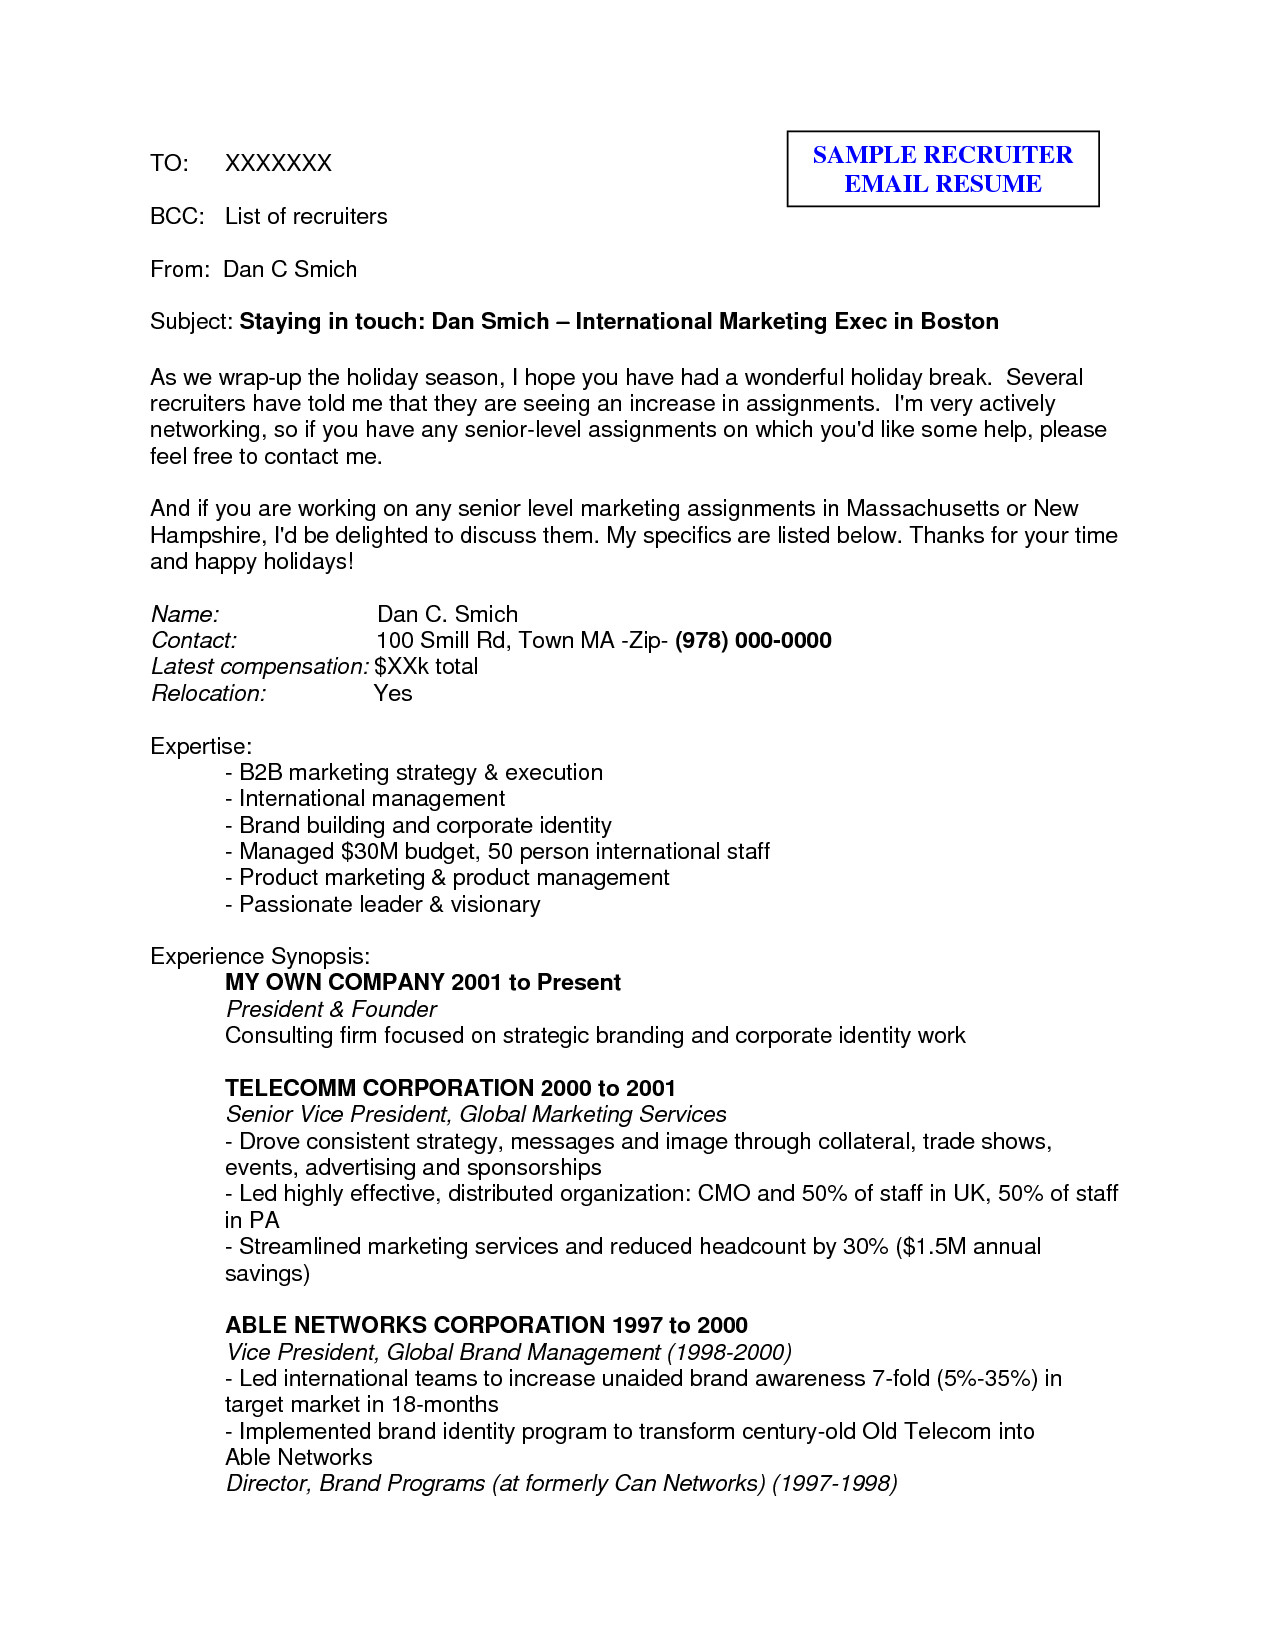 Free Holiday Letter Template - How to Send A Resume 22 Cover Letter Email format Sending Sample